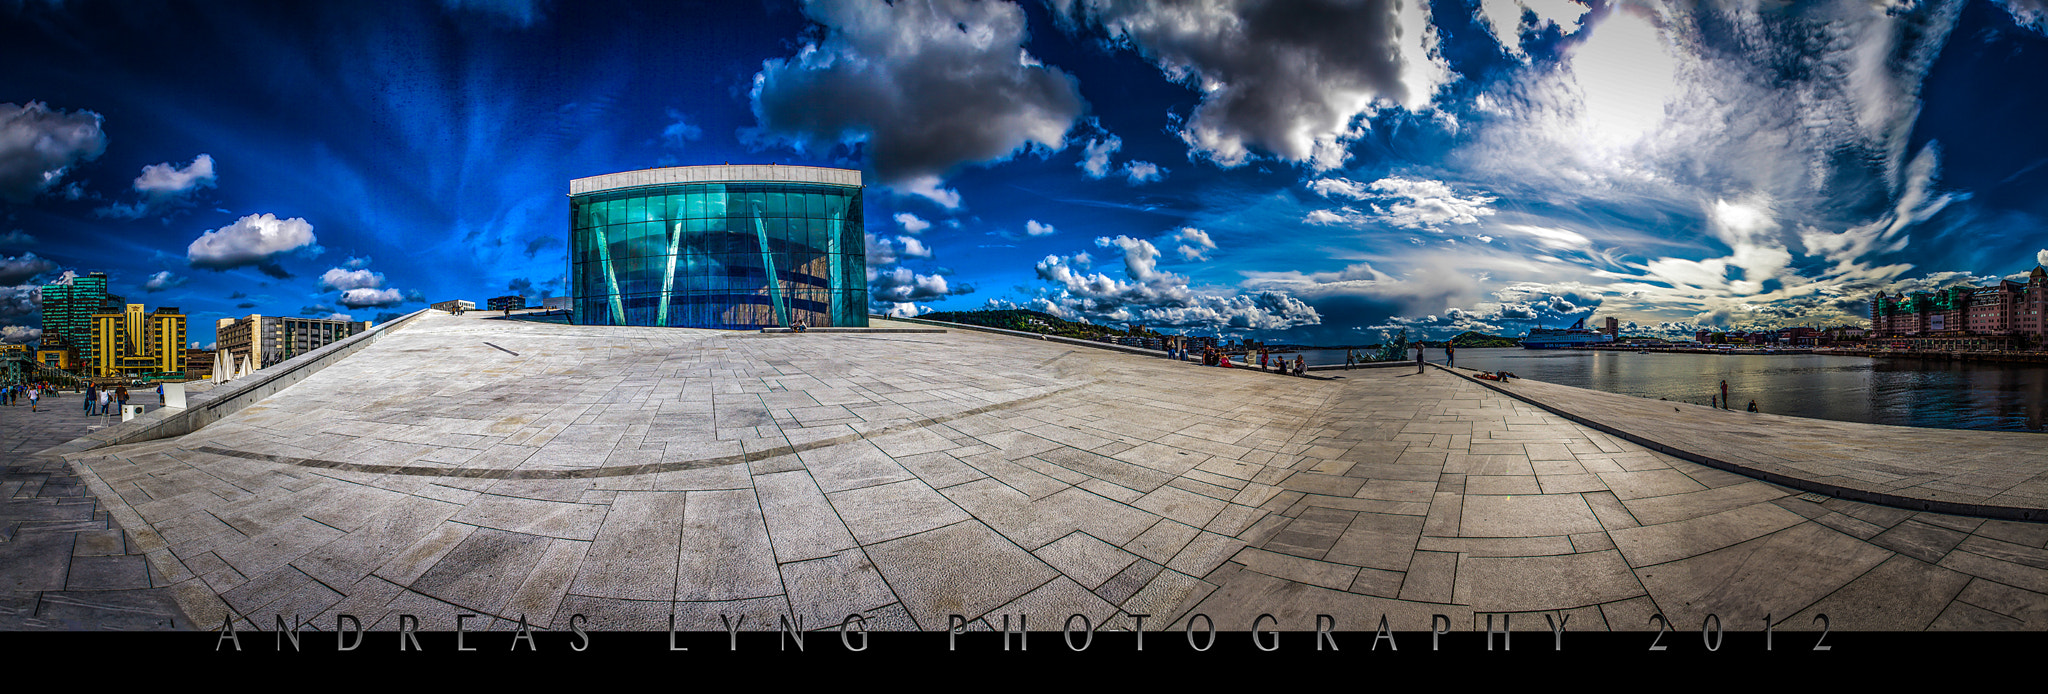 Photograph Oslo Opera by Andreas Lyng on 500px